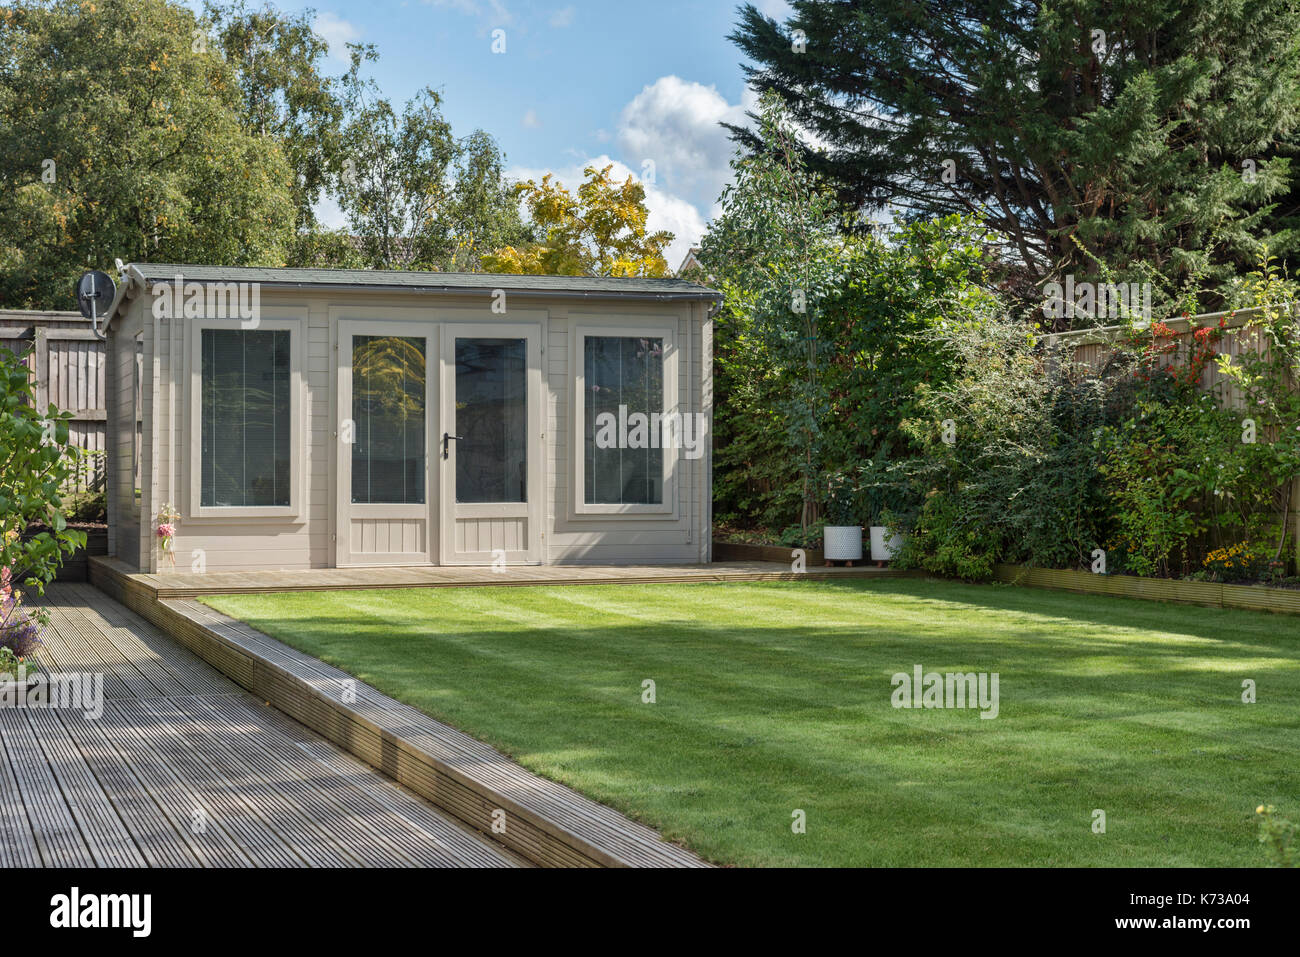 A modern summerhouse / shed in a very well manicured domestic garden - Stock Image